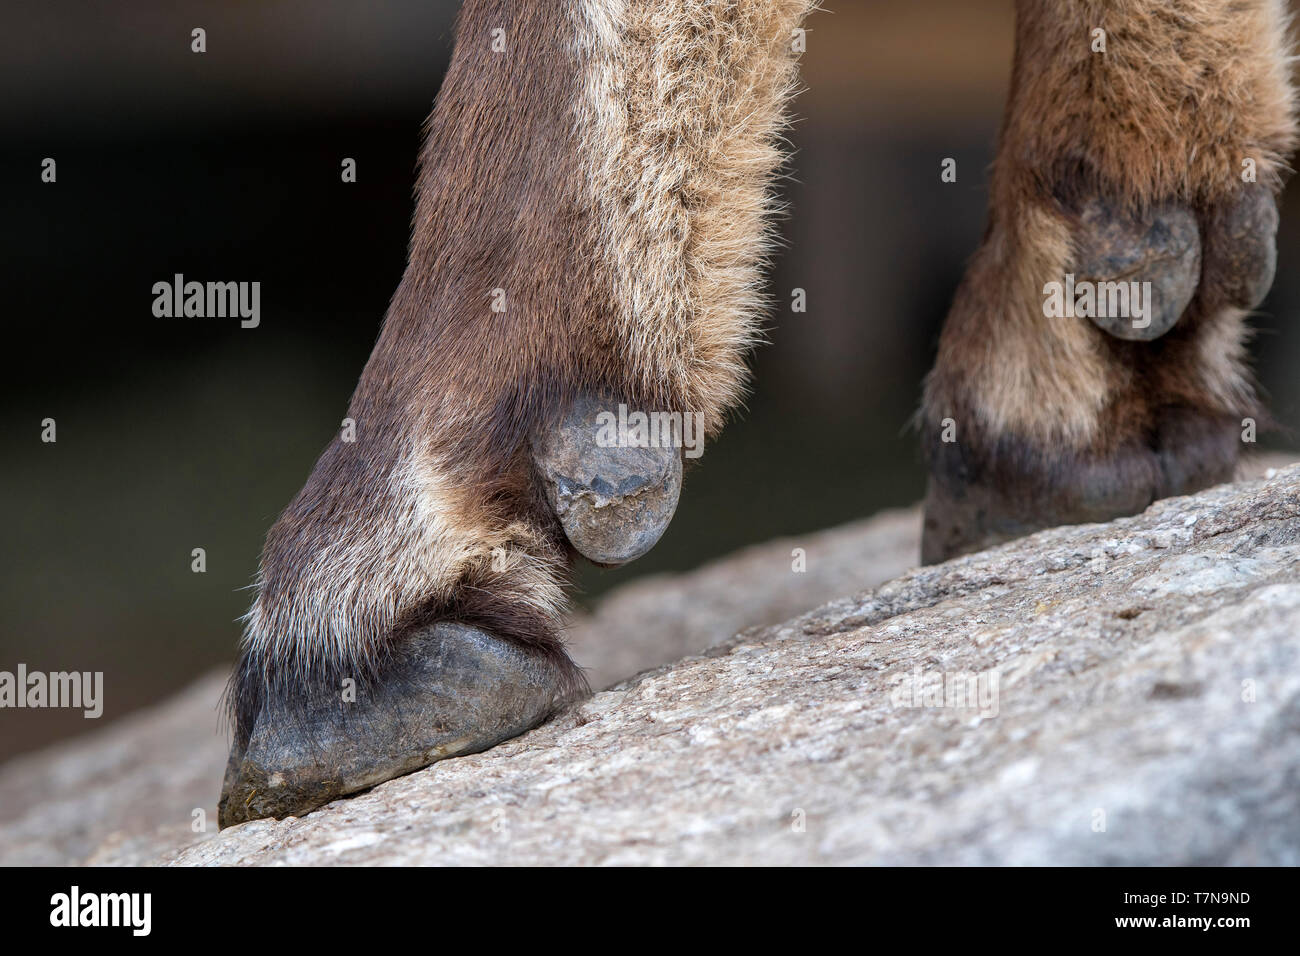 Alpine Ibex (Capra ibex)- Close-up of front legs and hooves. Austria - Stock Image